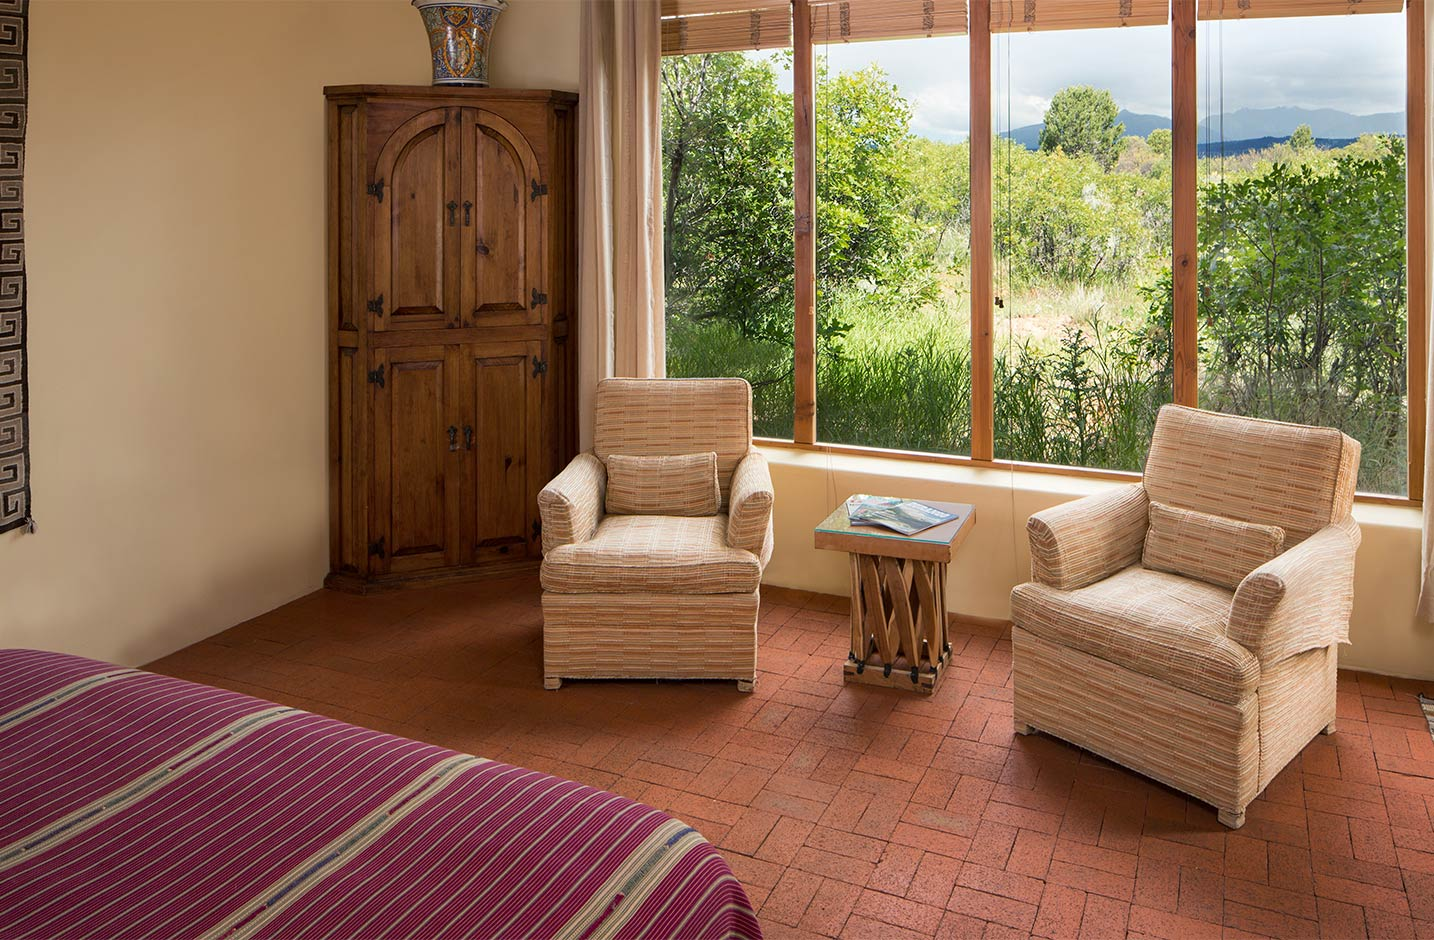 A seating area in the bedroom with large windows